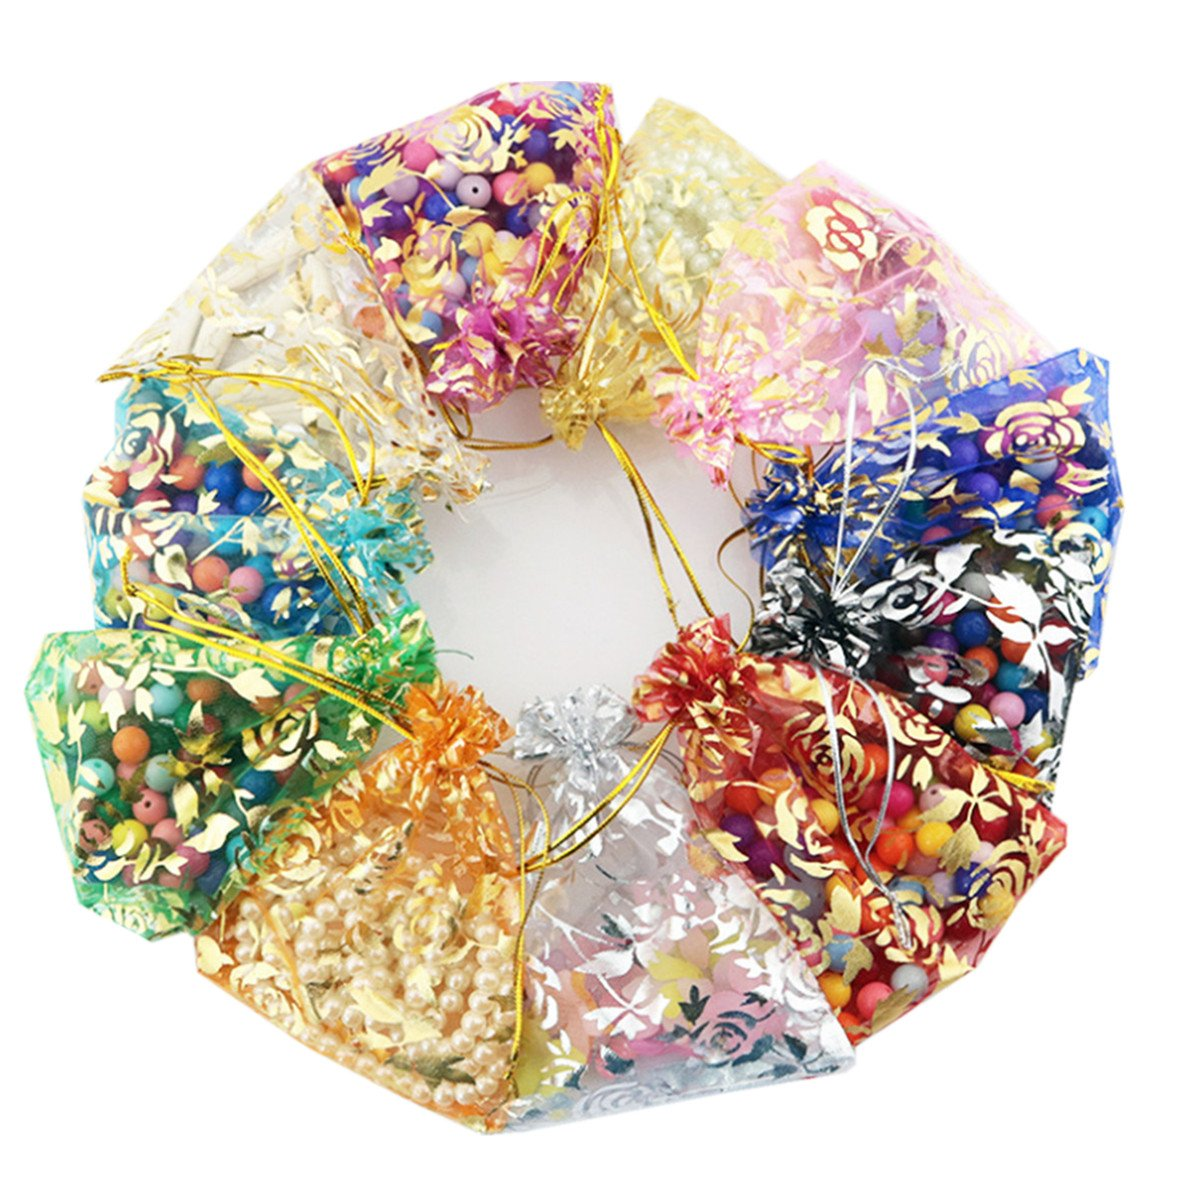 E Support 100Pcs Organza Pouches Tulle Sheer Drawstring For Jewelry Candy Wedding Party Christmas Favor Gift Bags Rose Mixed Color (4.33x6.30)